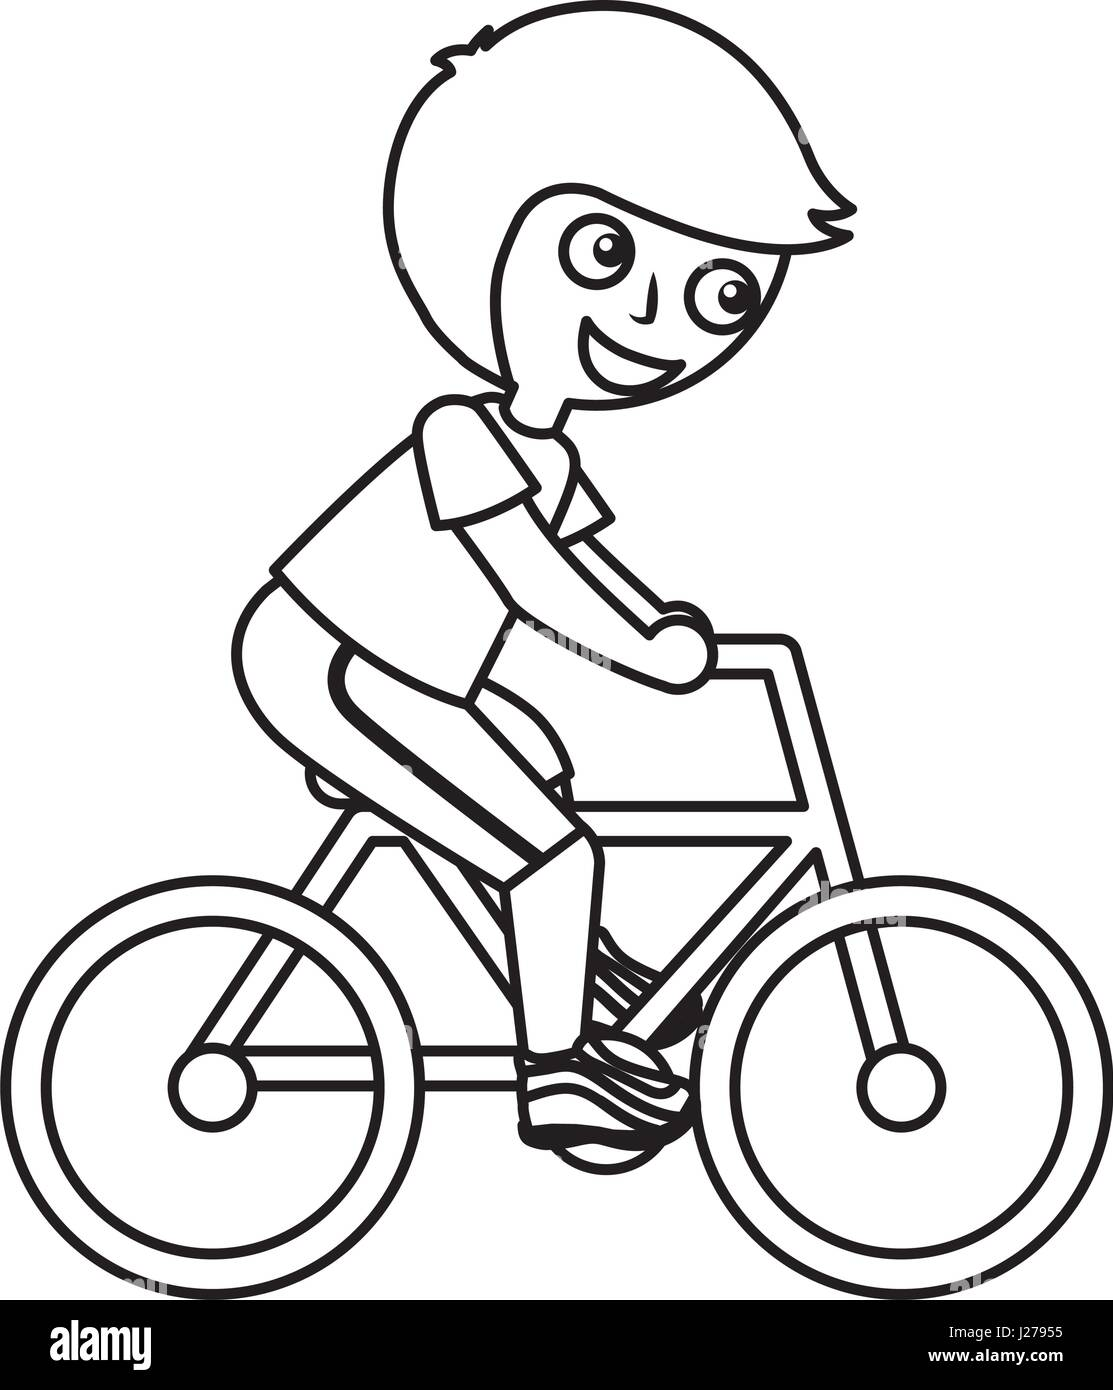 Little Kid Riding Bicycle Stock Vector Art Illustration Vector